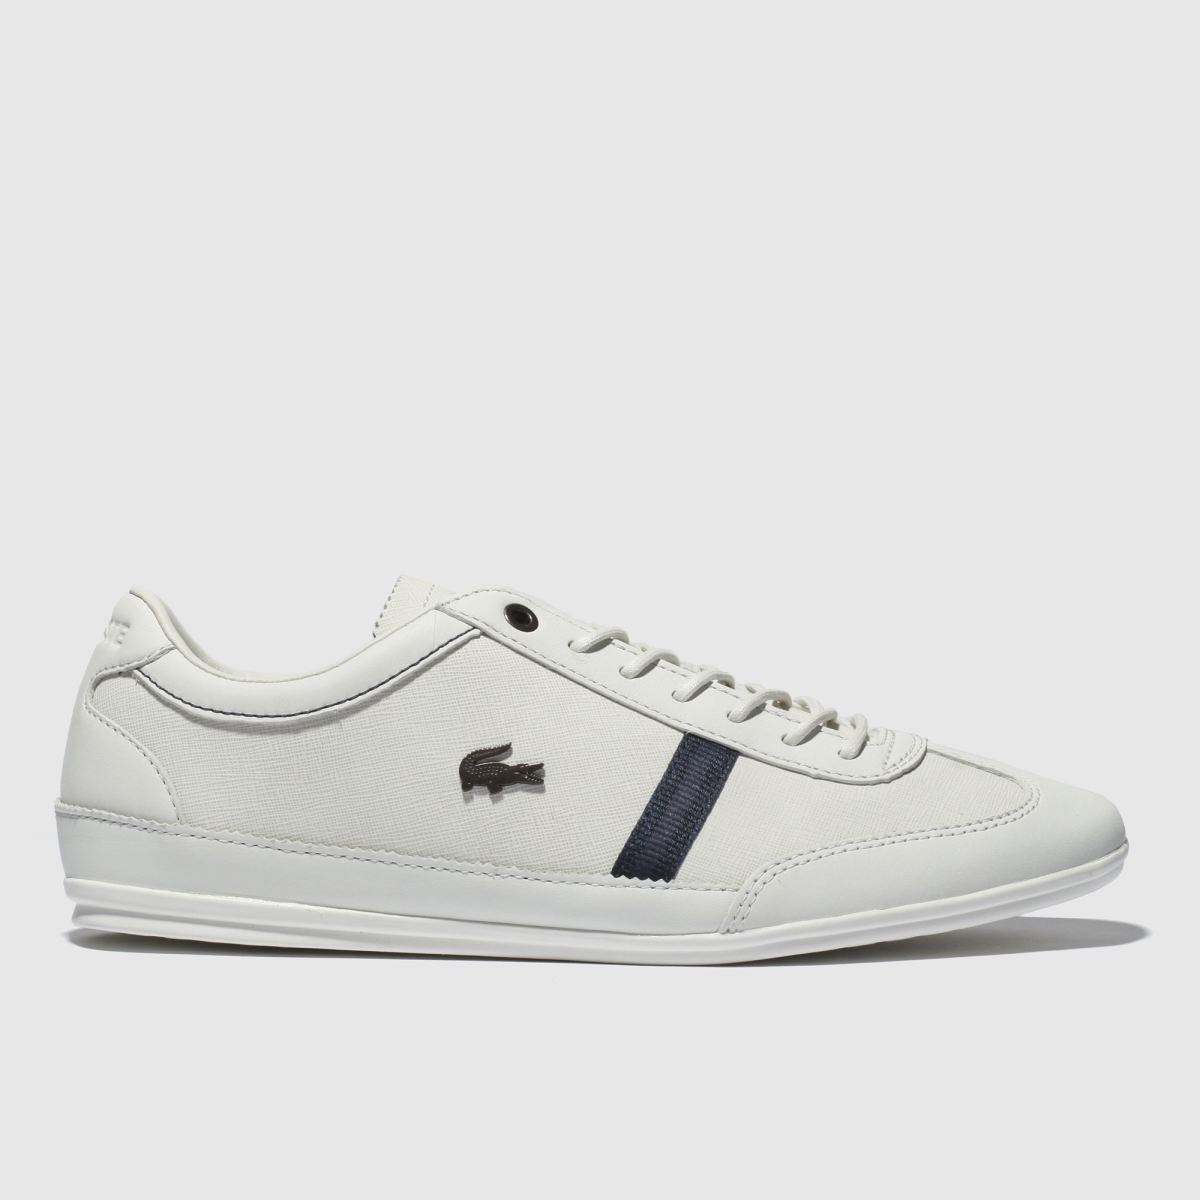 Lacoste White & Navy Misano Trainers